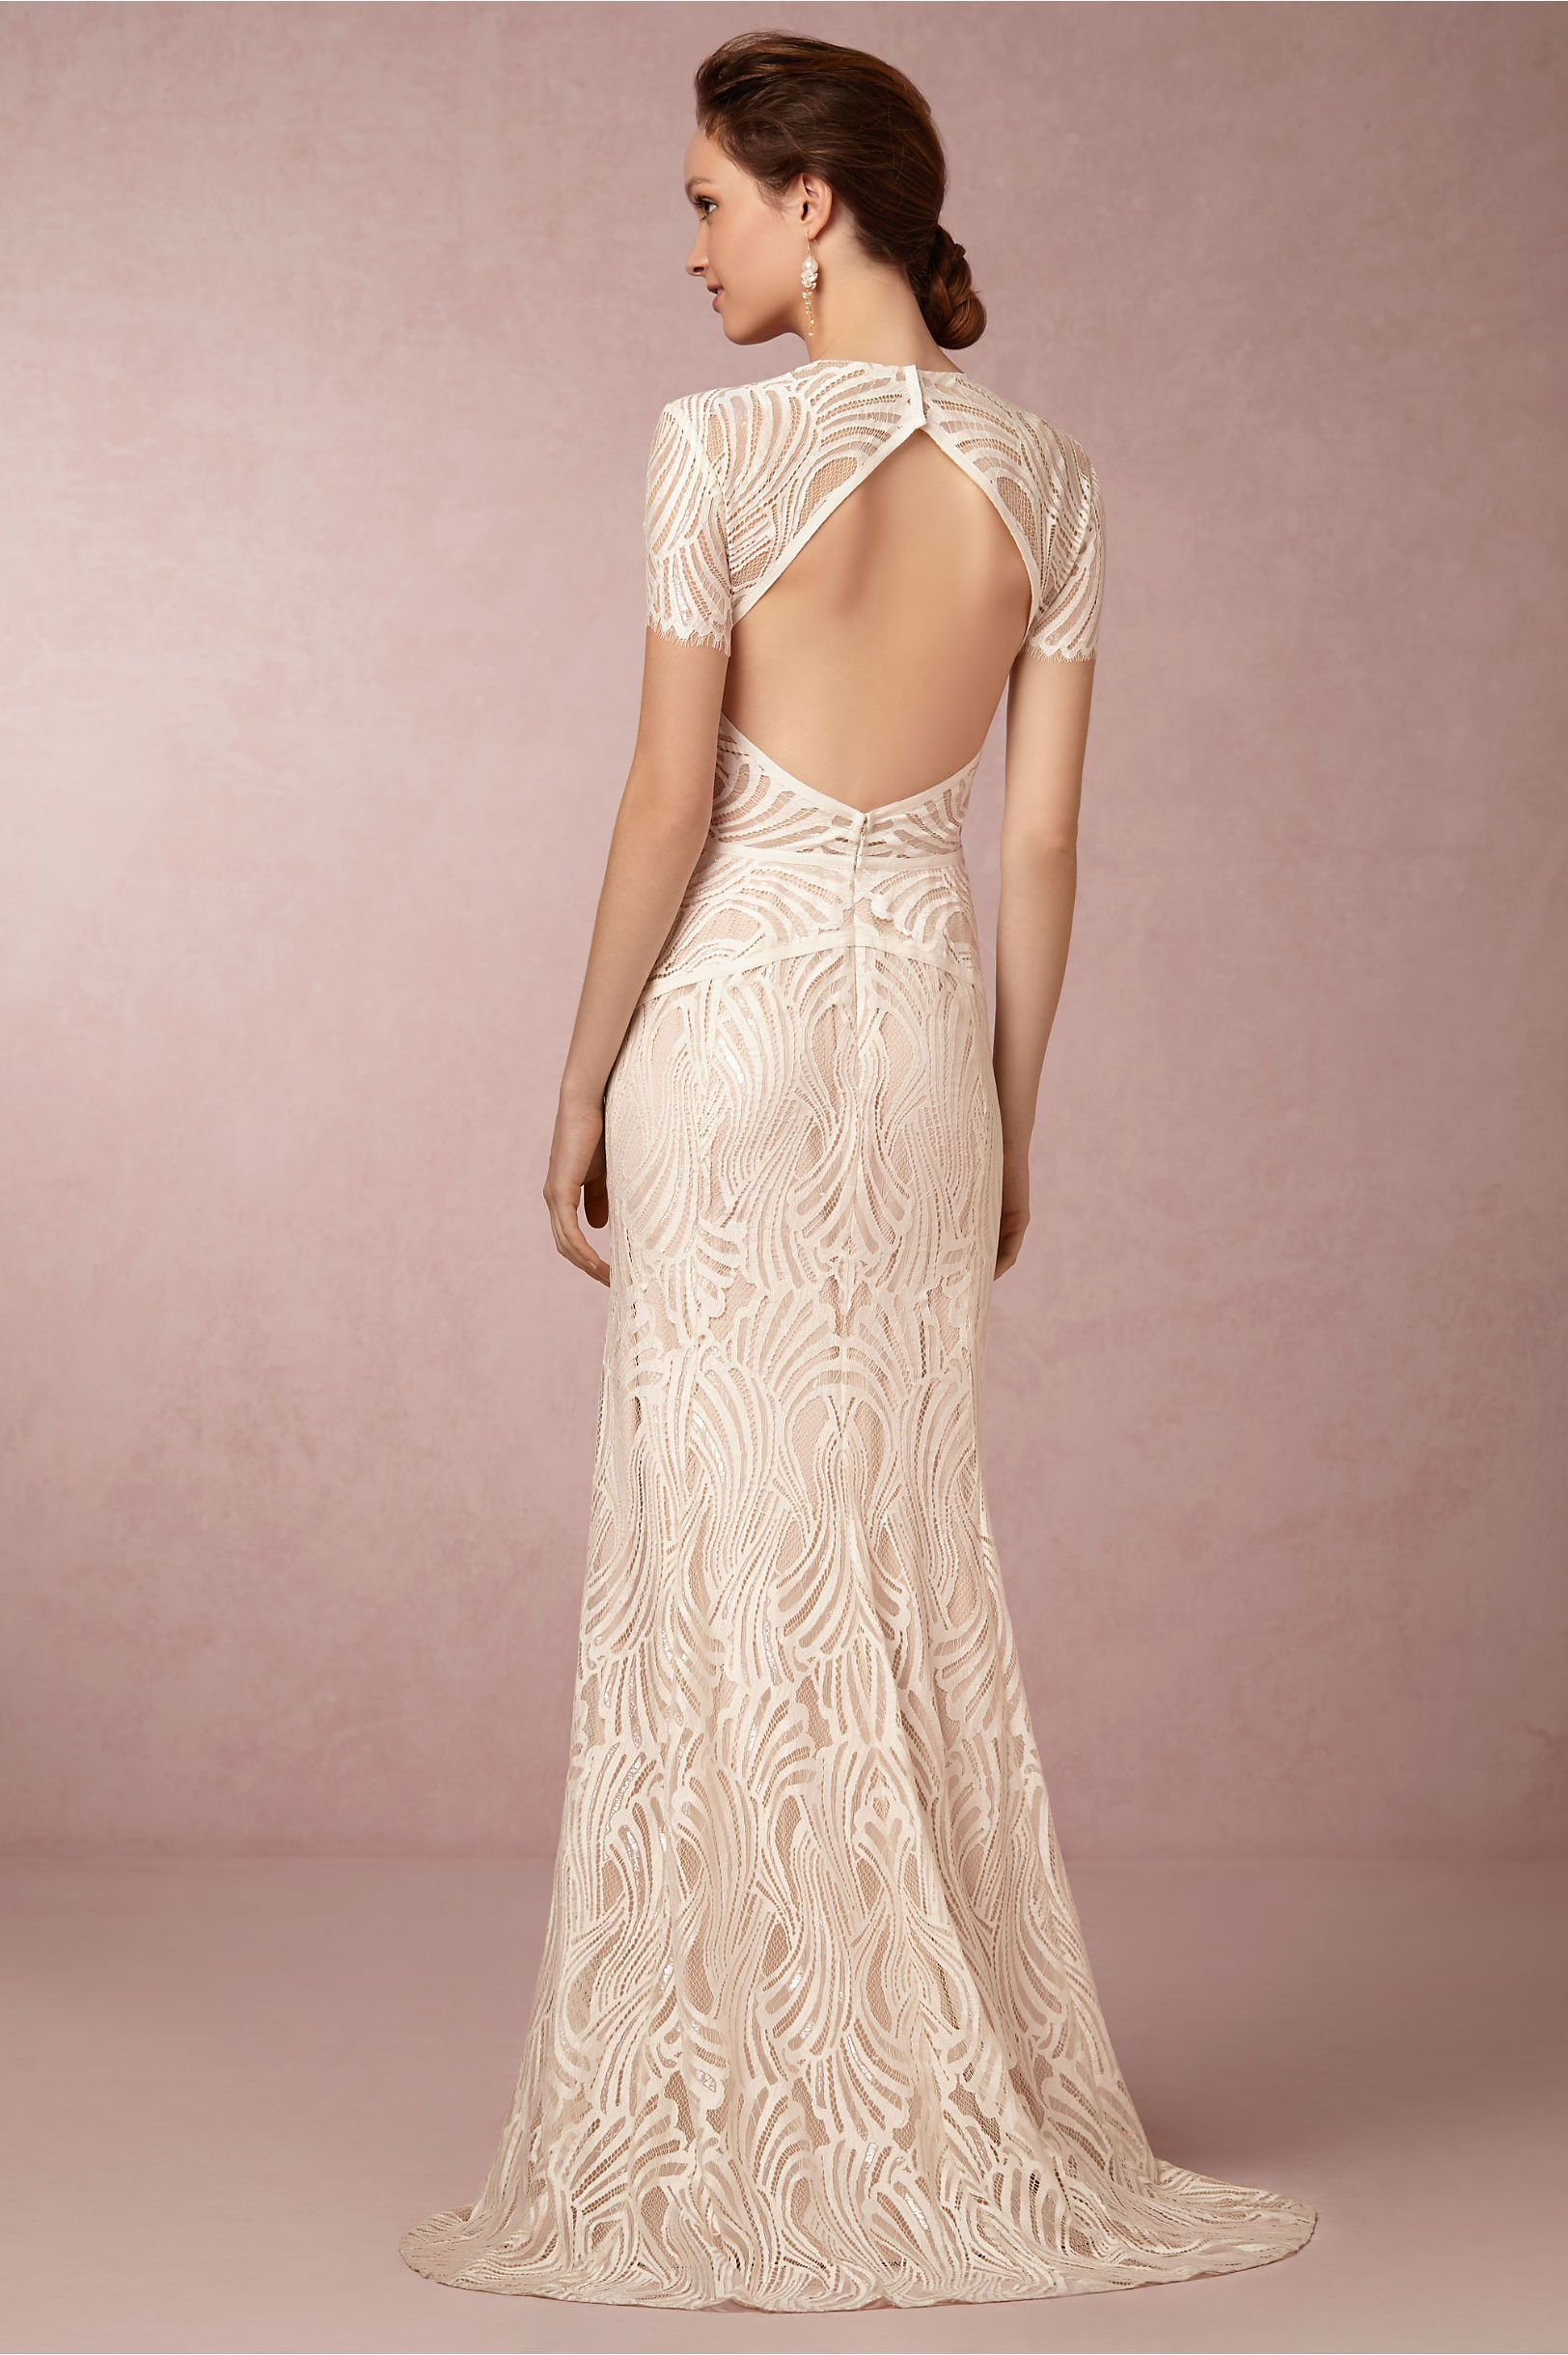 Beilin Gown from @BHLDN | A dress... | Pinterest | Vestidos de novia ...